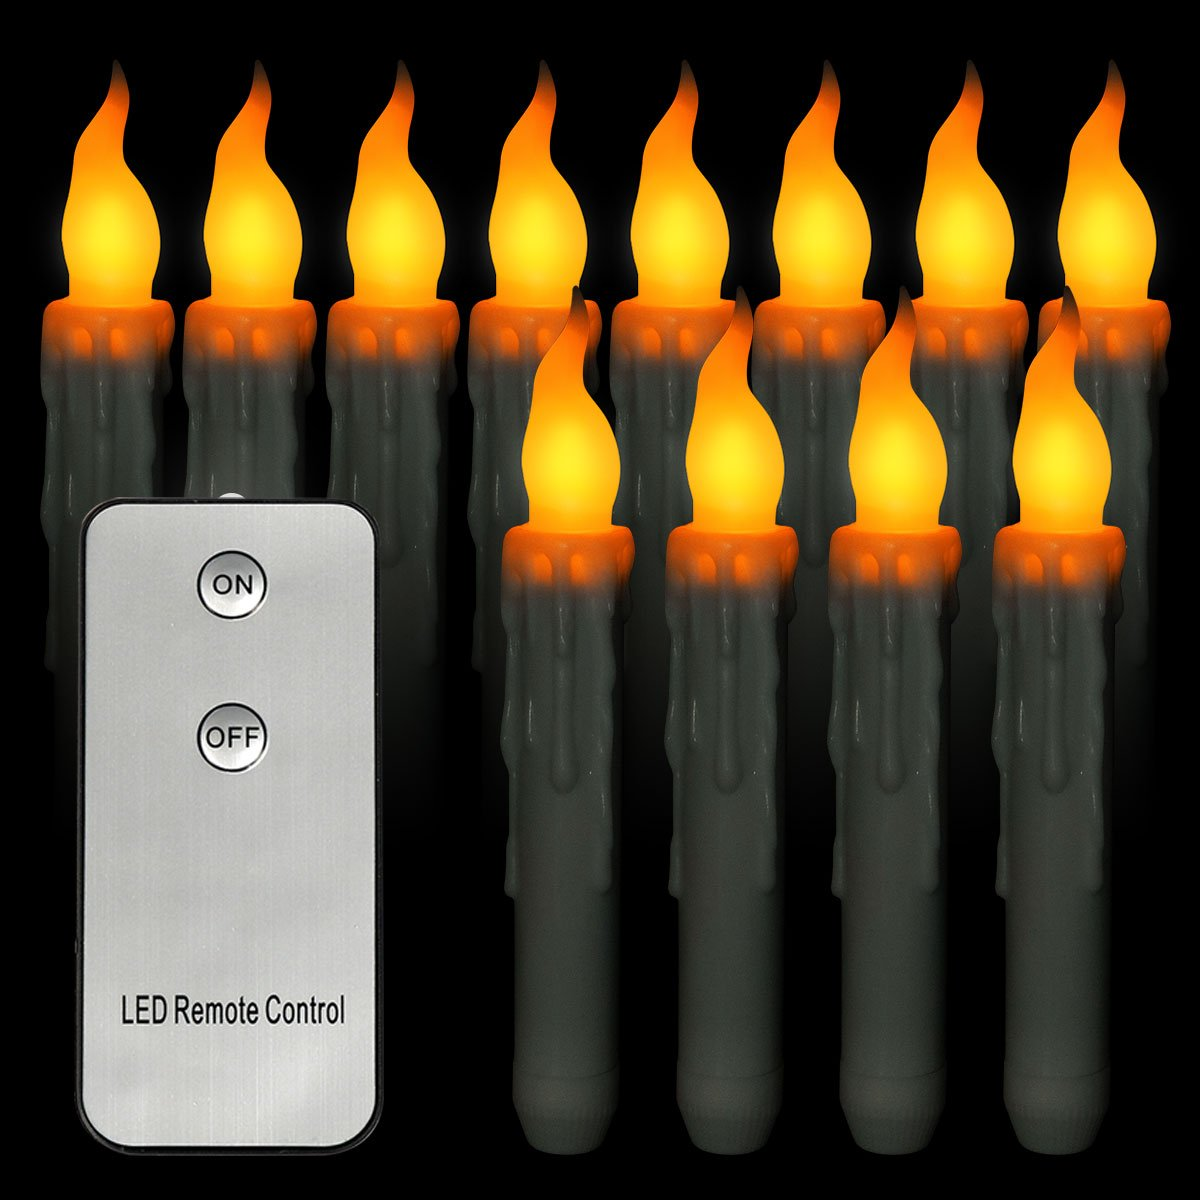 Taper Candles 12 Pack Flicker Flameless LED Remote Control Wax Dripped Battery Operated Electric Yellow Taper Candles for Halloween Christmas(Fit Most Candleholder,Battery not Included)